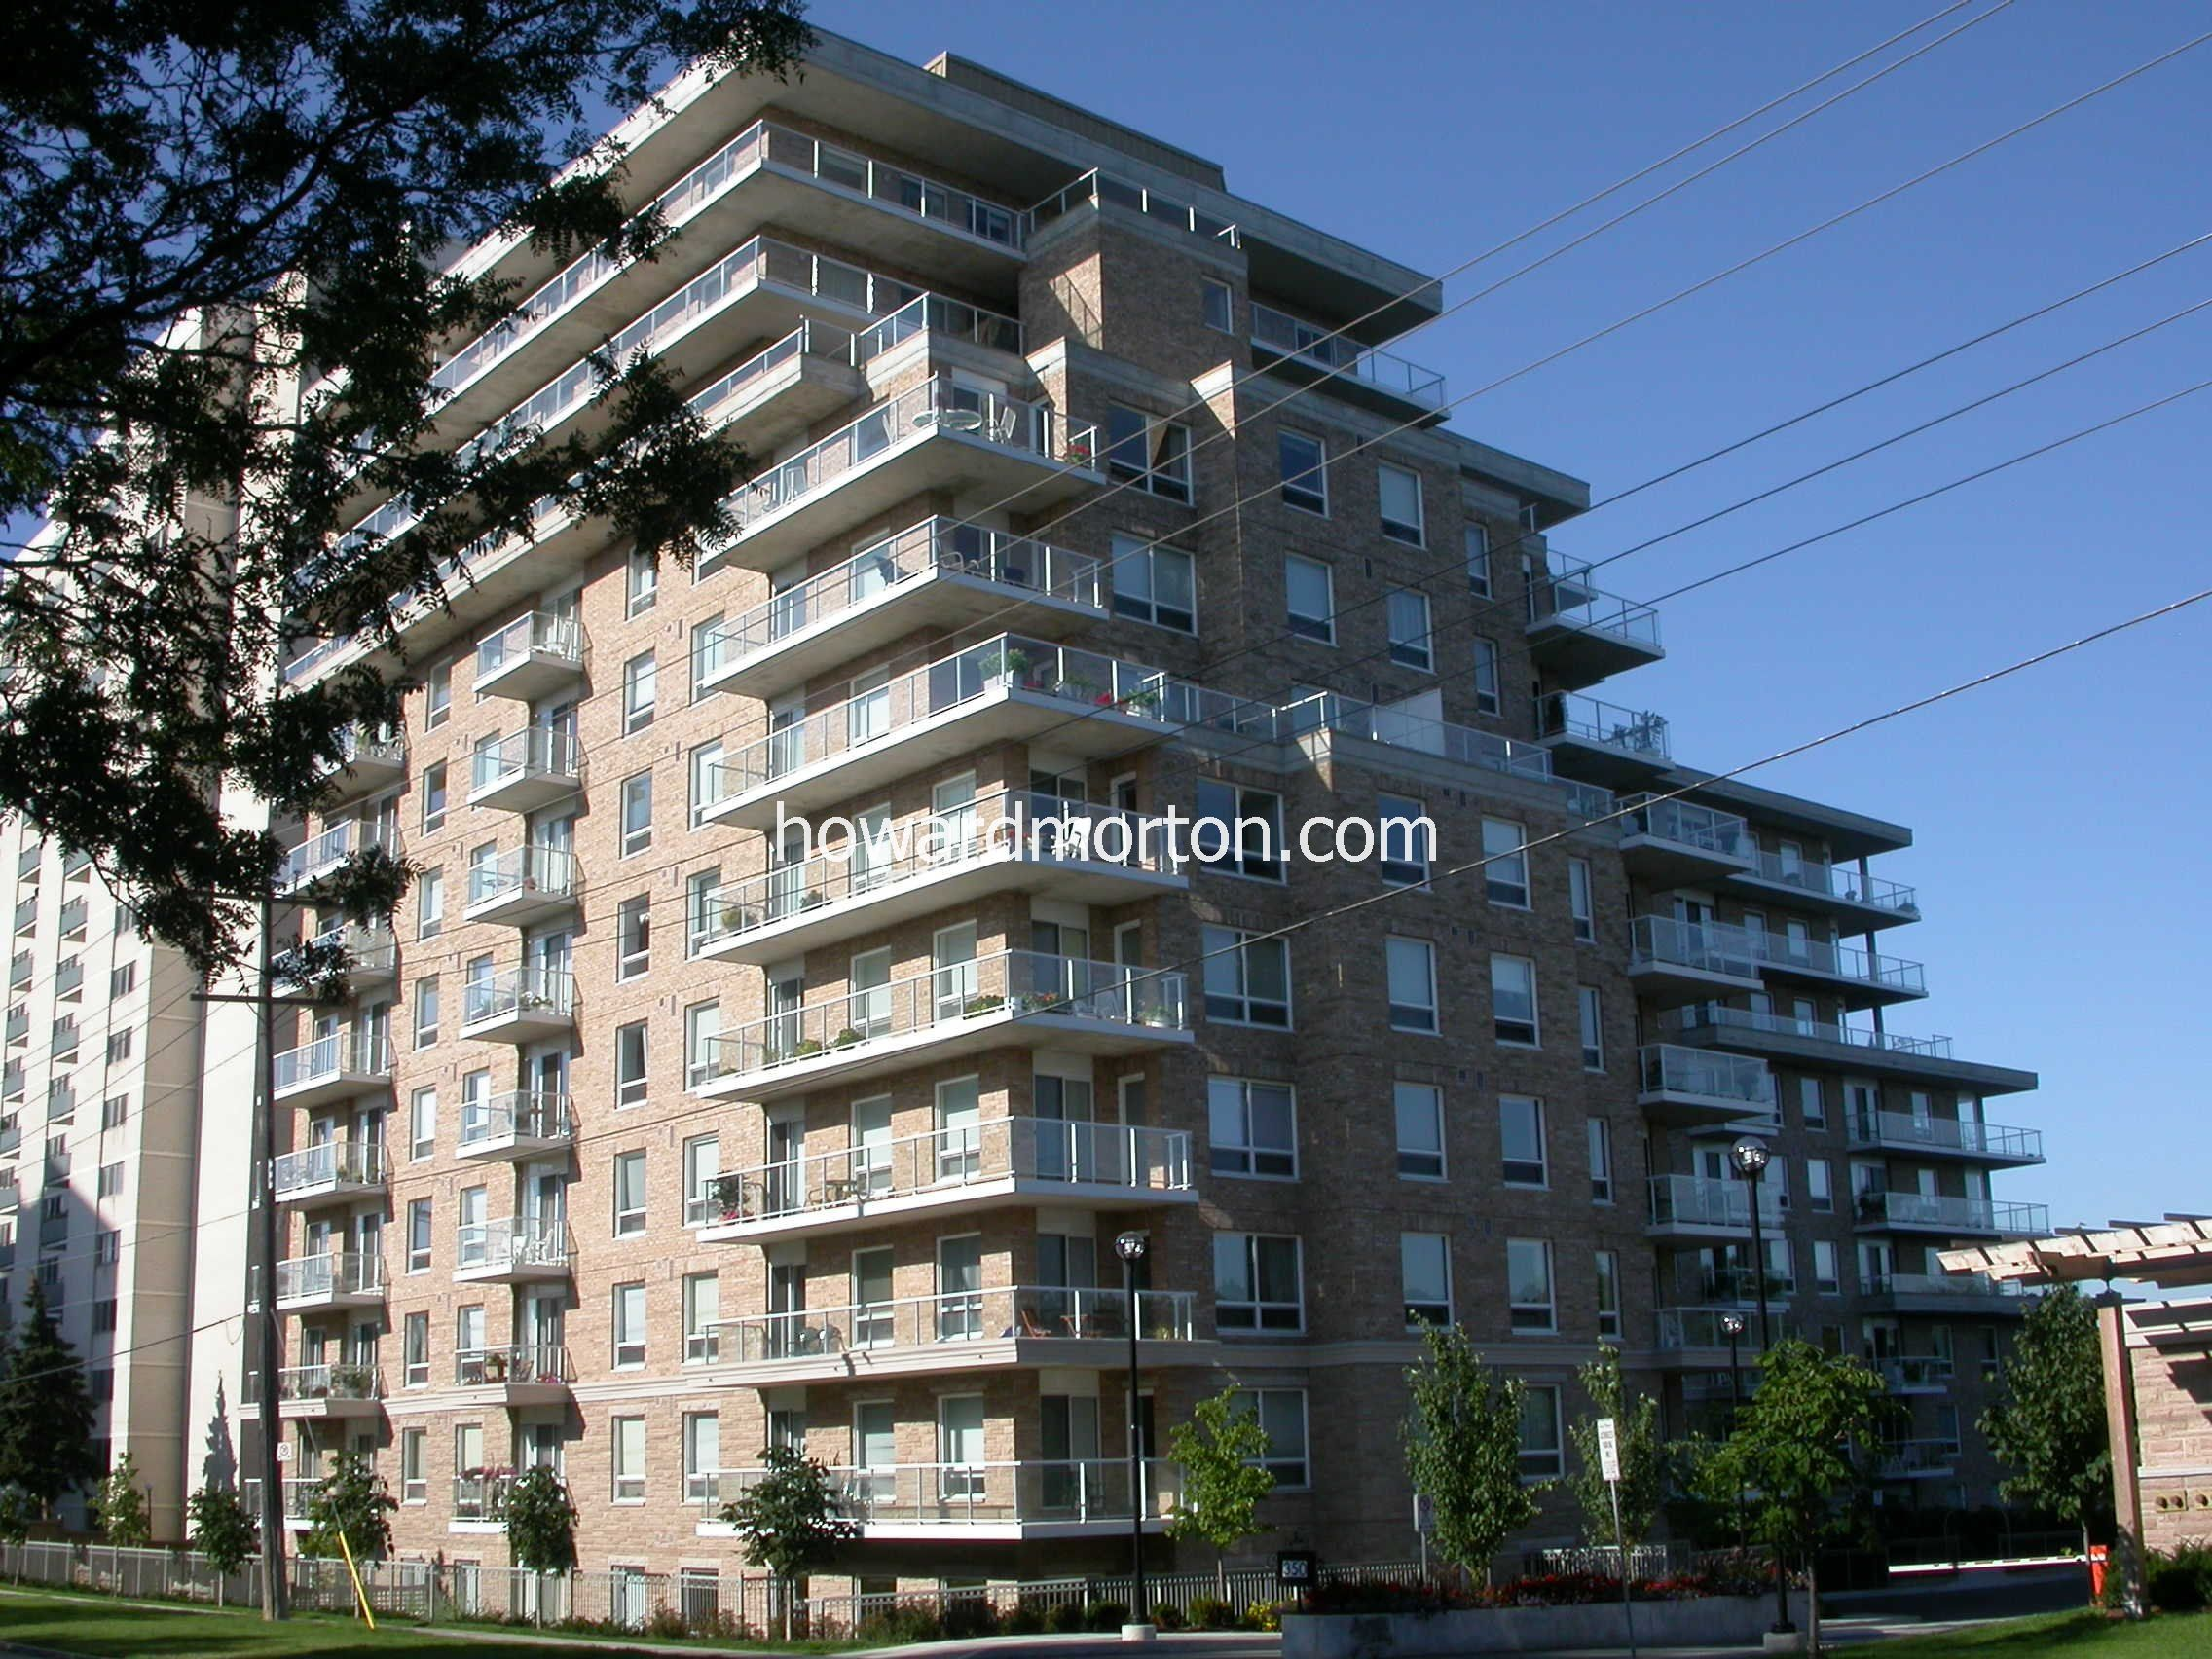 Chestnut Place, 350 Mill Road, Chestnut Place Condos